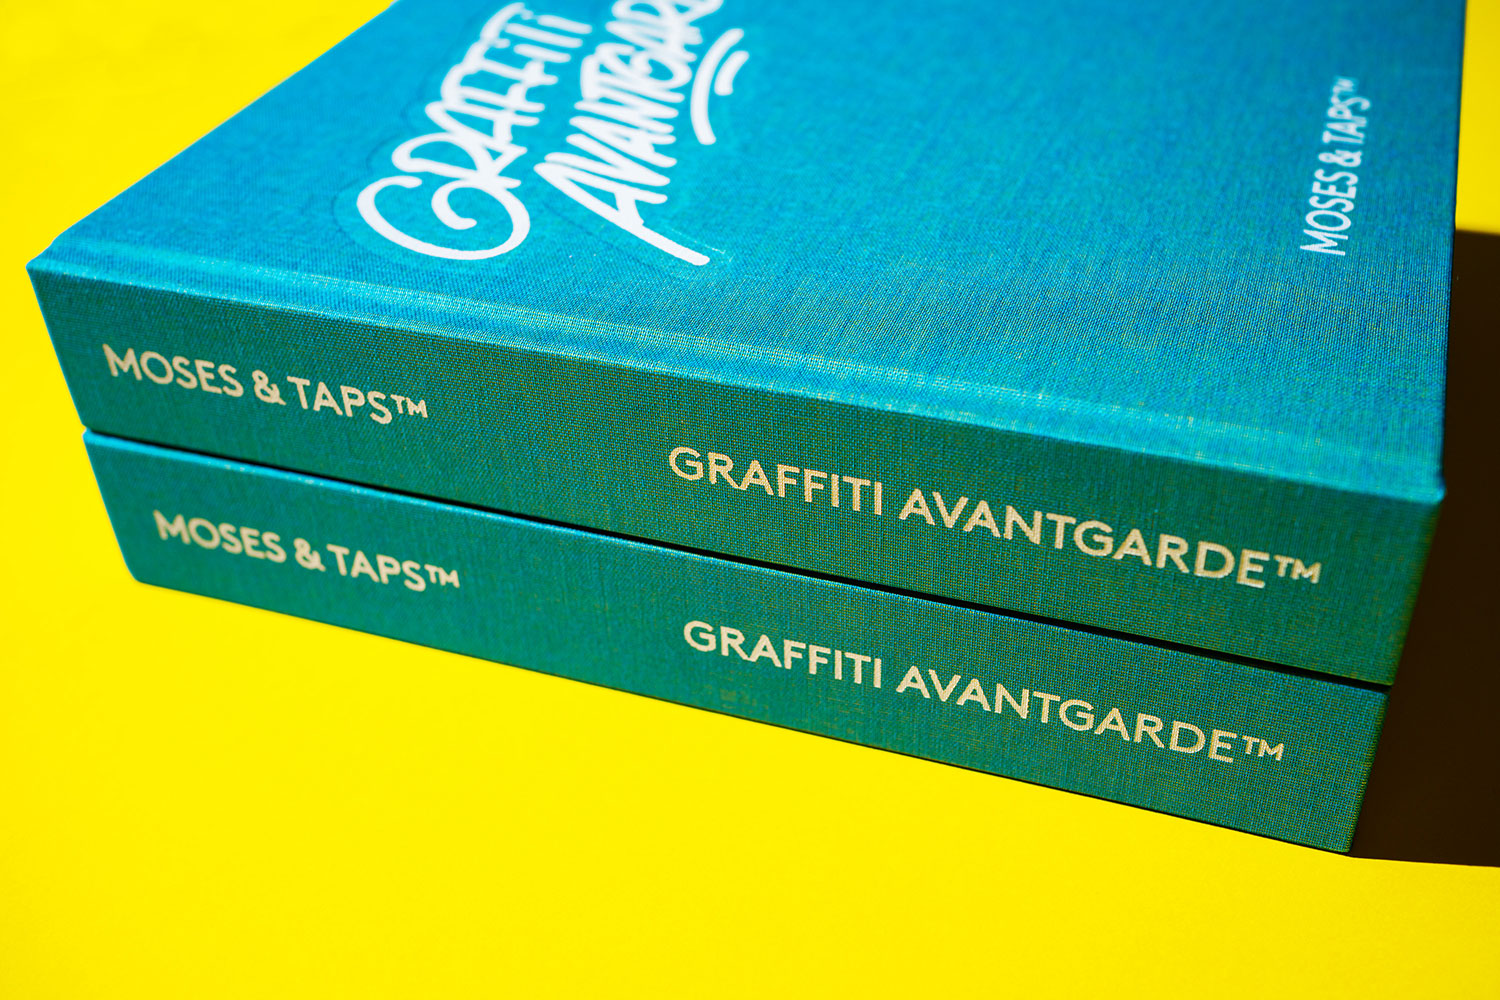 MOSES TAPS GRAFFITI AVANTGARDE BOOK STANDARD EDITION IRIDESCENT CLOTH COVER YELLOW BLUE THE GRIFTERS PUBLISHING